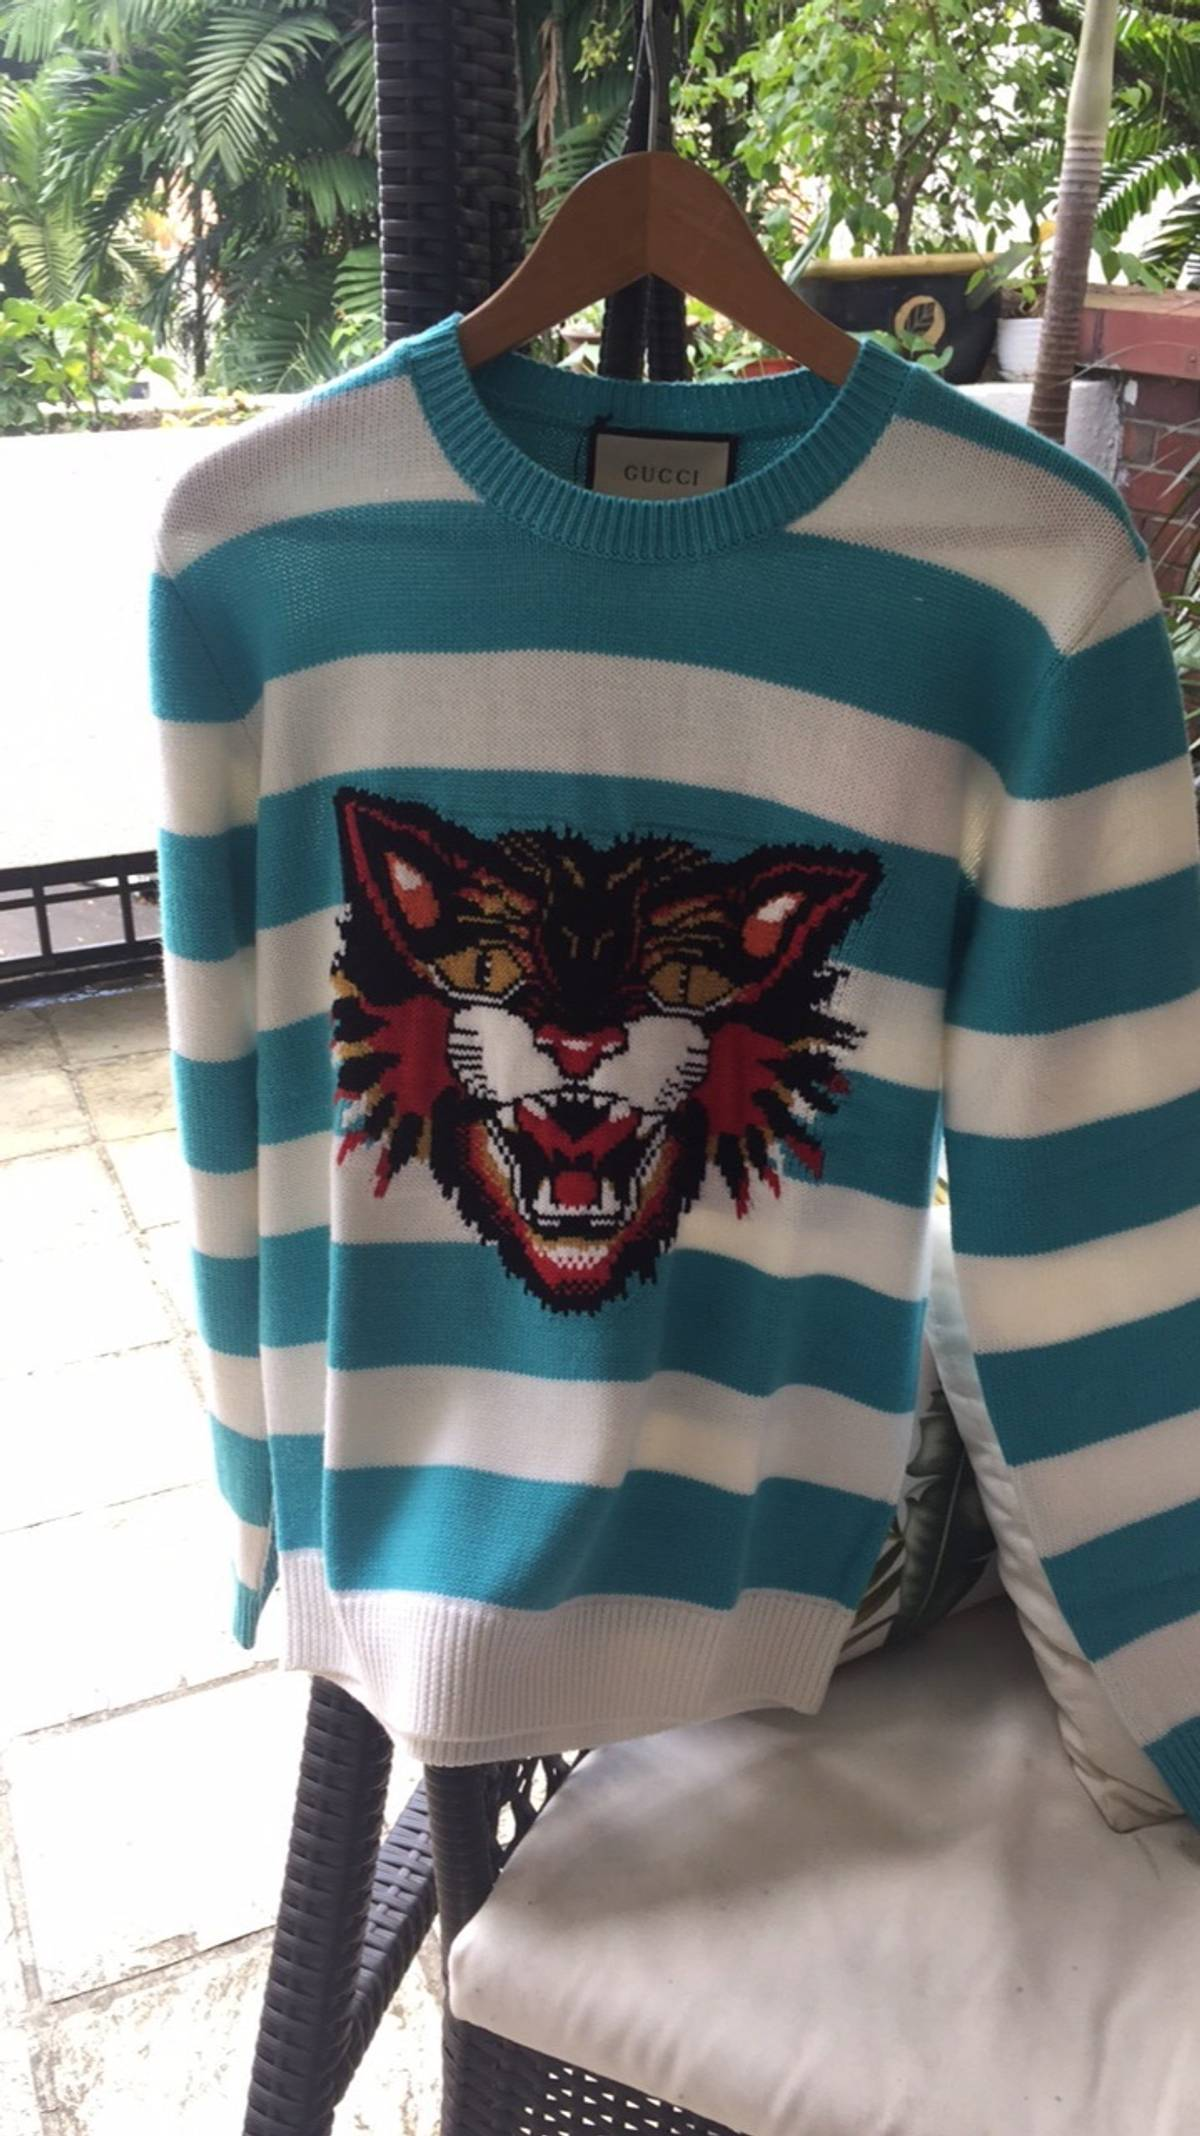 c837c0bb16f Gucci Gucci Angry Cat Intarsia Wool-knit Pullover